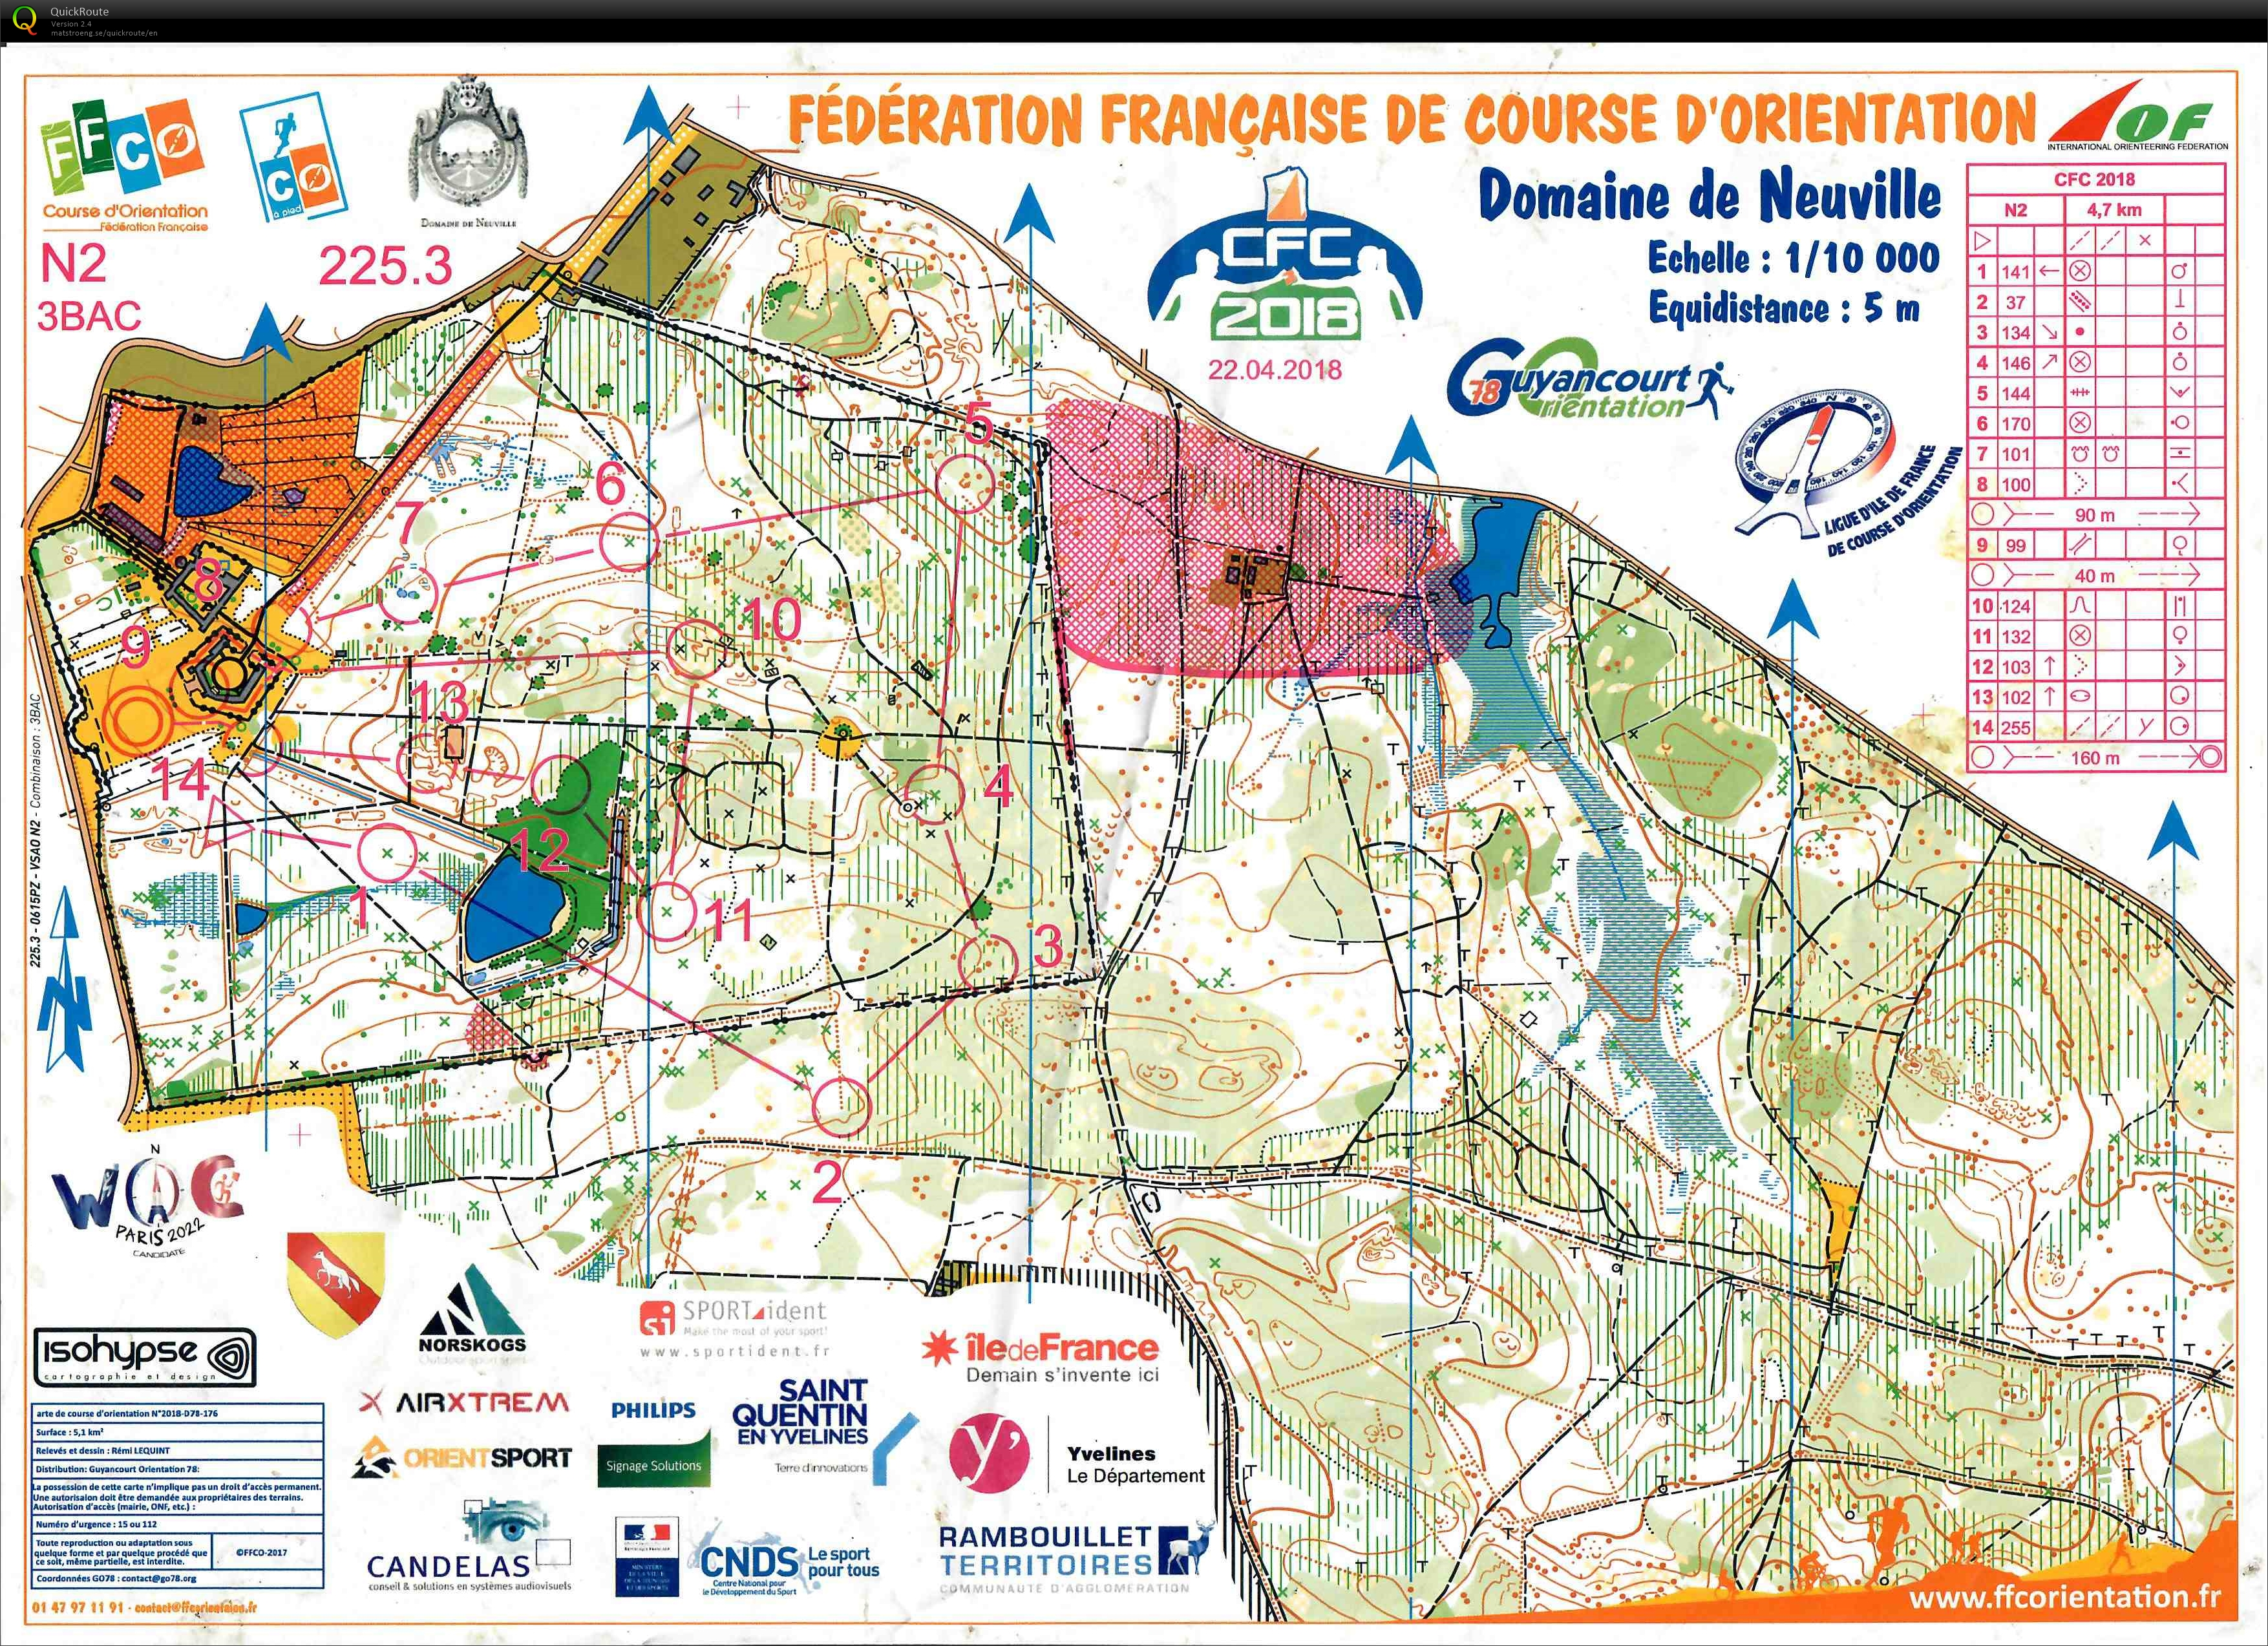 French champs - club relay - Nationale 2 - leg 3 (22/04/2018)